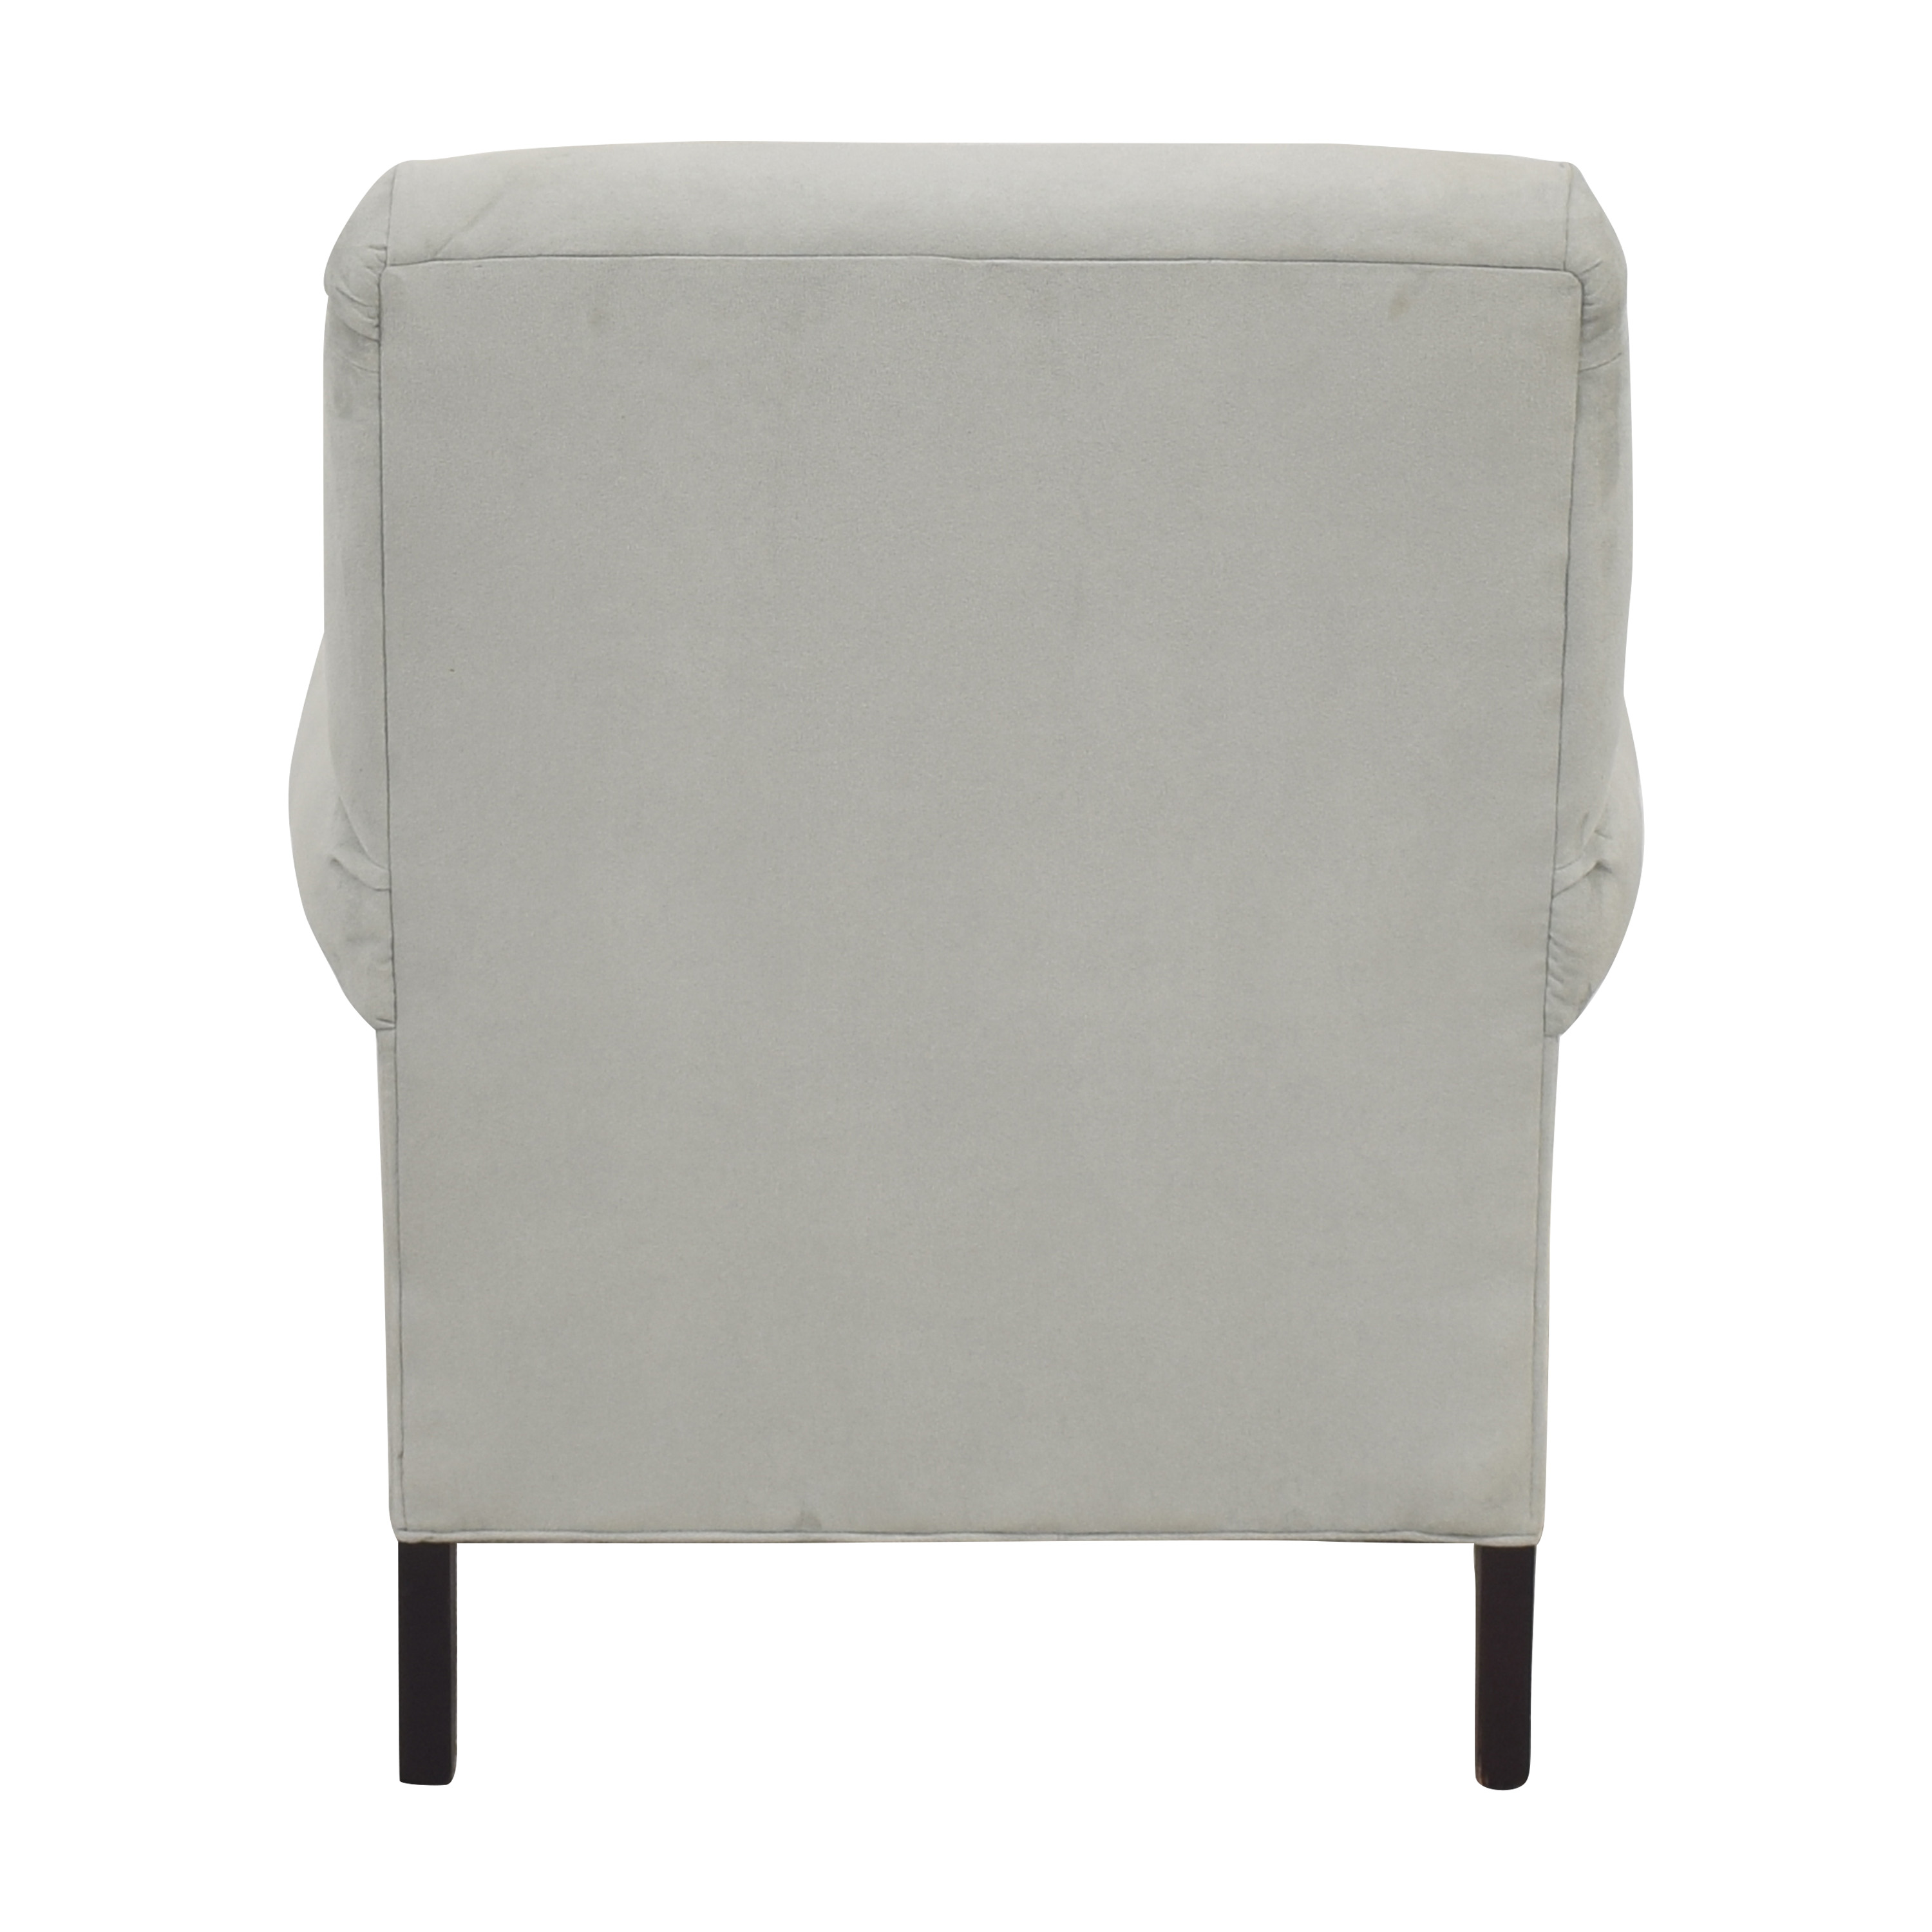 Rowe Furniture Rowe Furniture Roll Arm Accent Chair on sale